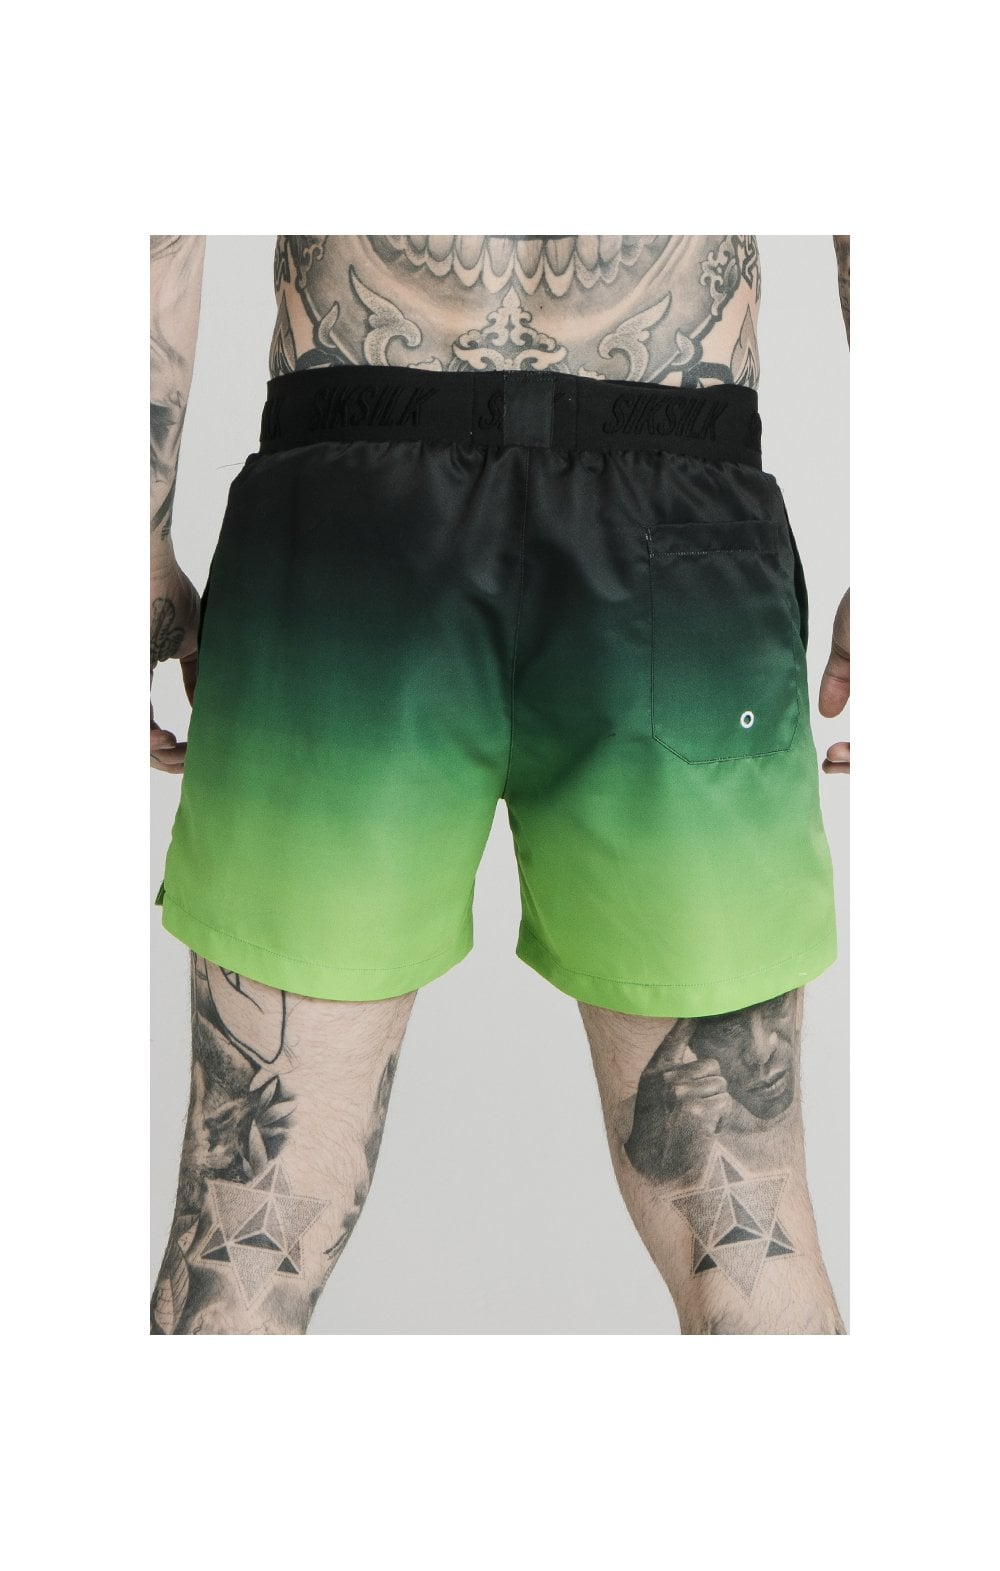 SikSilk Tape Fade Swim Shorts - Black & Fluro (4)